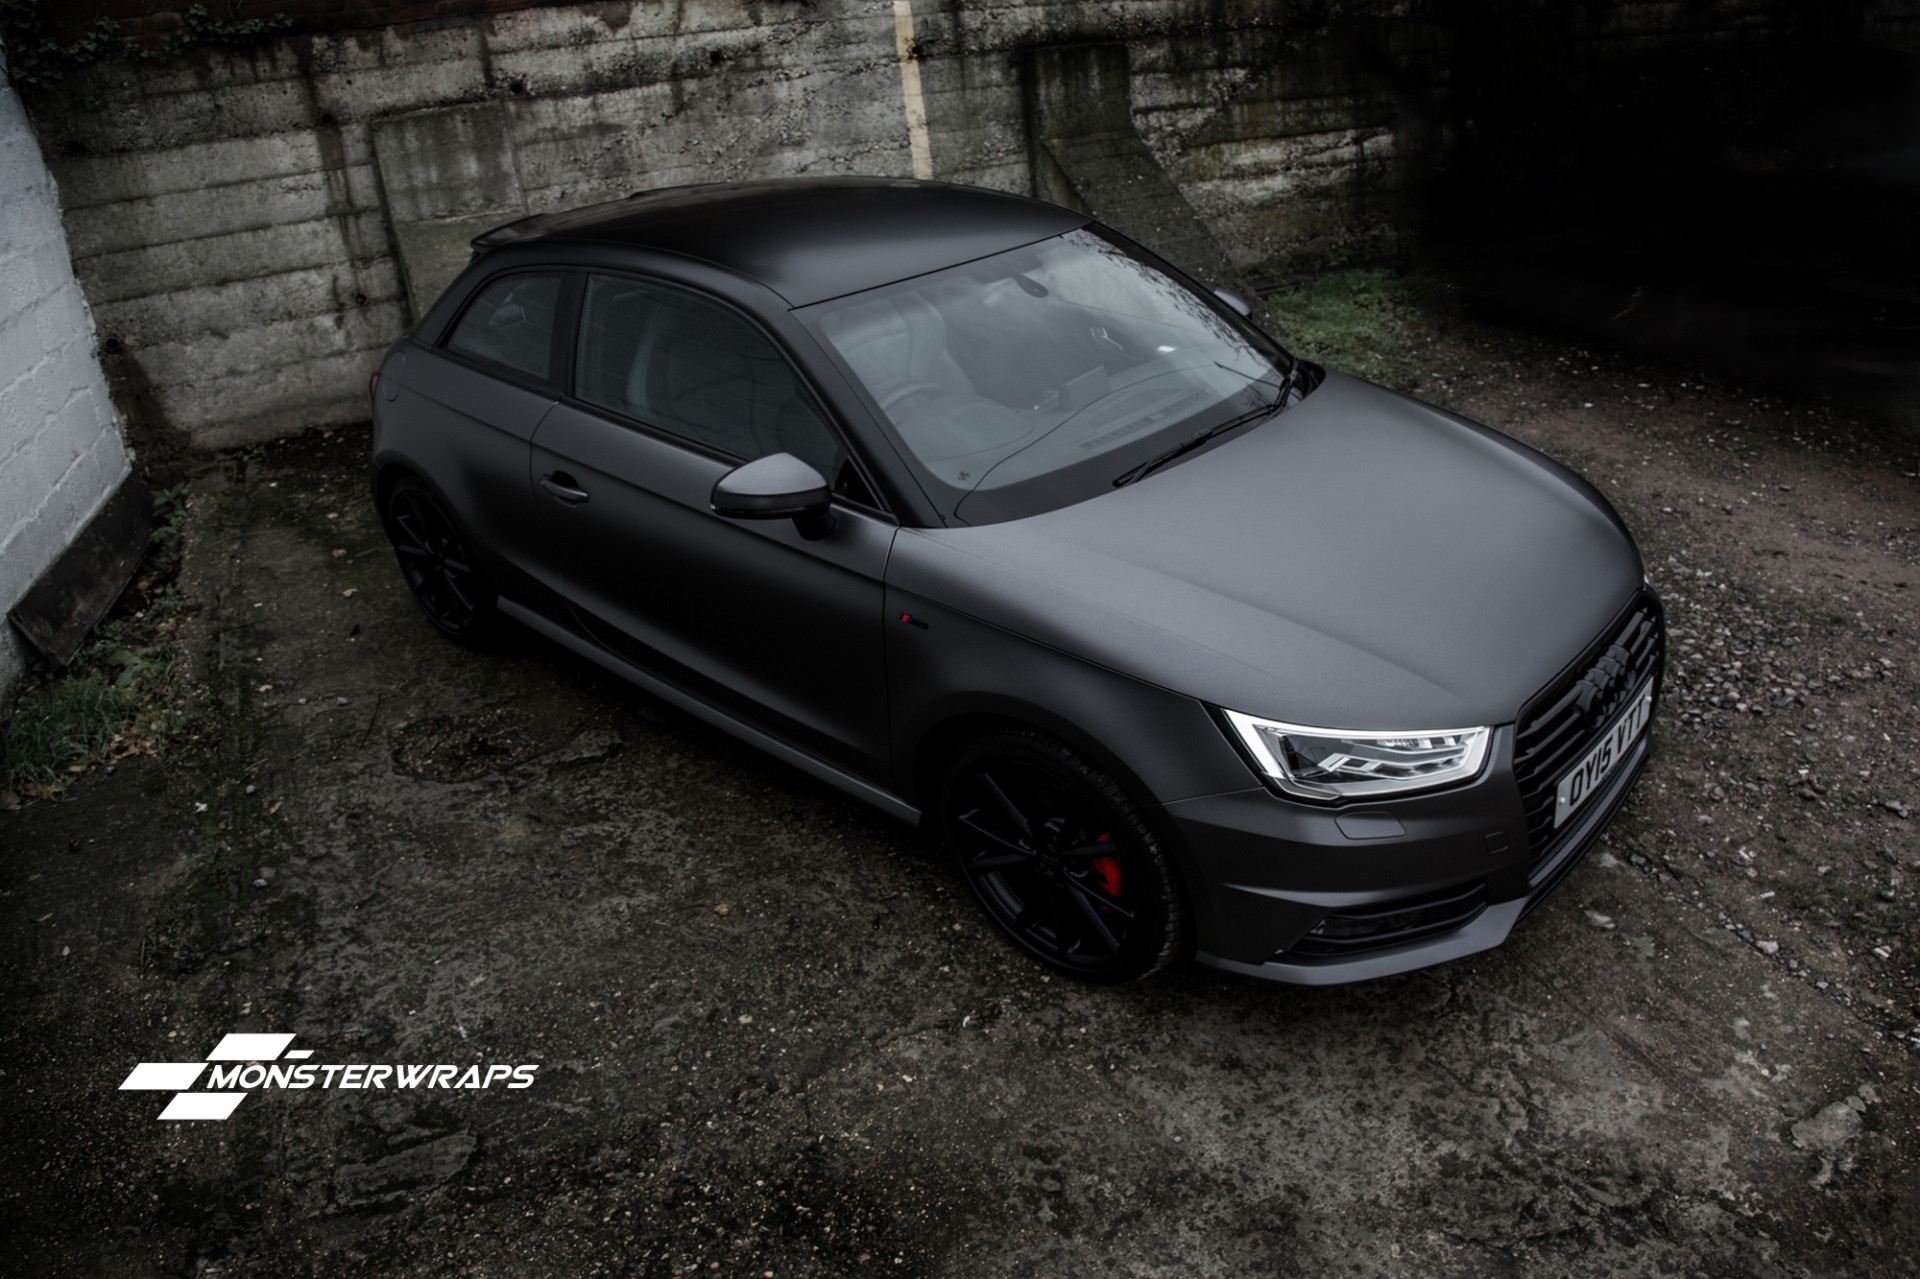 Audi A1 Tsfi Satin Dark Grey And Satin Black Full Wrap